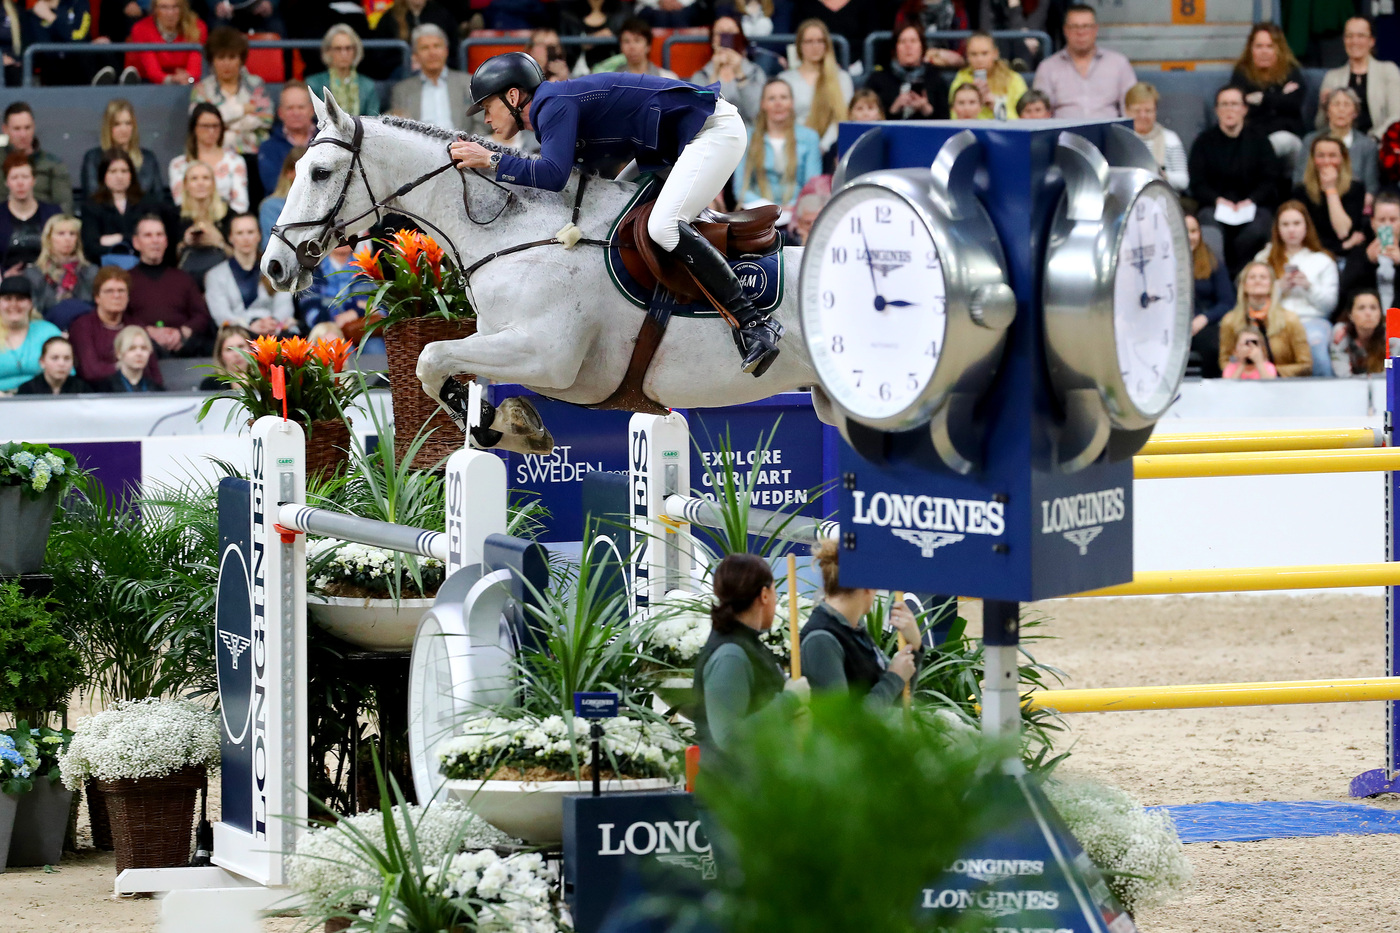 Longines Show Jumping Event: Steve Guerdat and Alamo took brilliant victory at the 2019 Longines FEI Jumping World CupTM Final 6